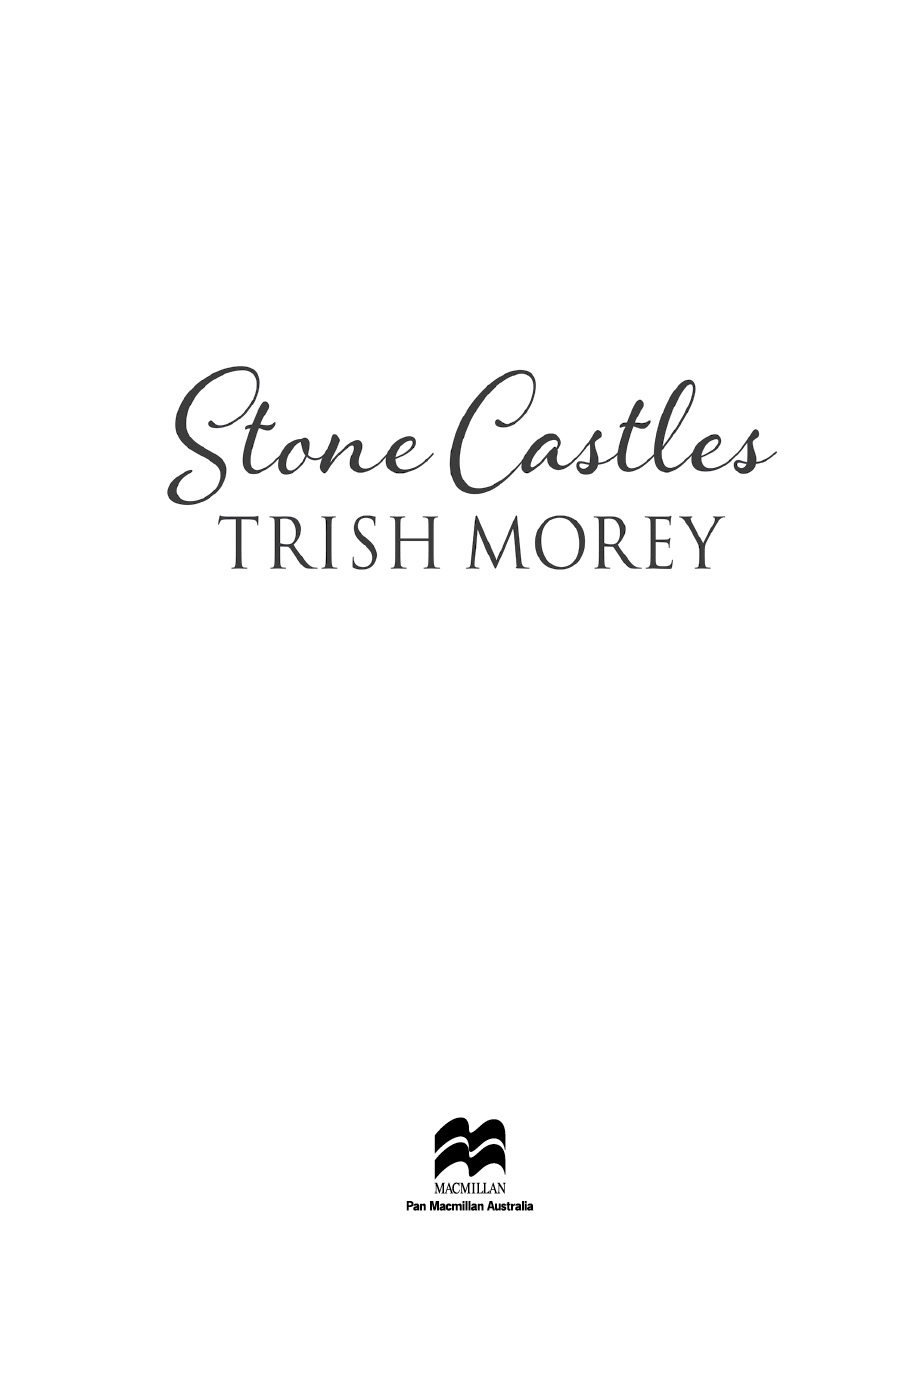 "Read online ""Stone Castles"" 